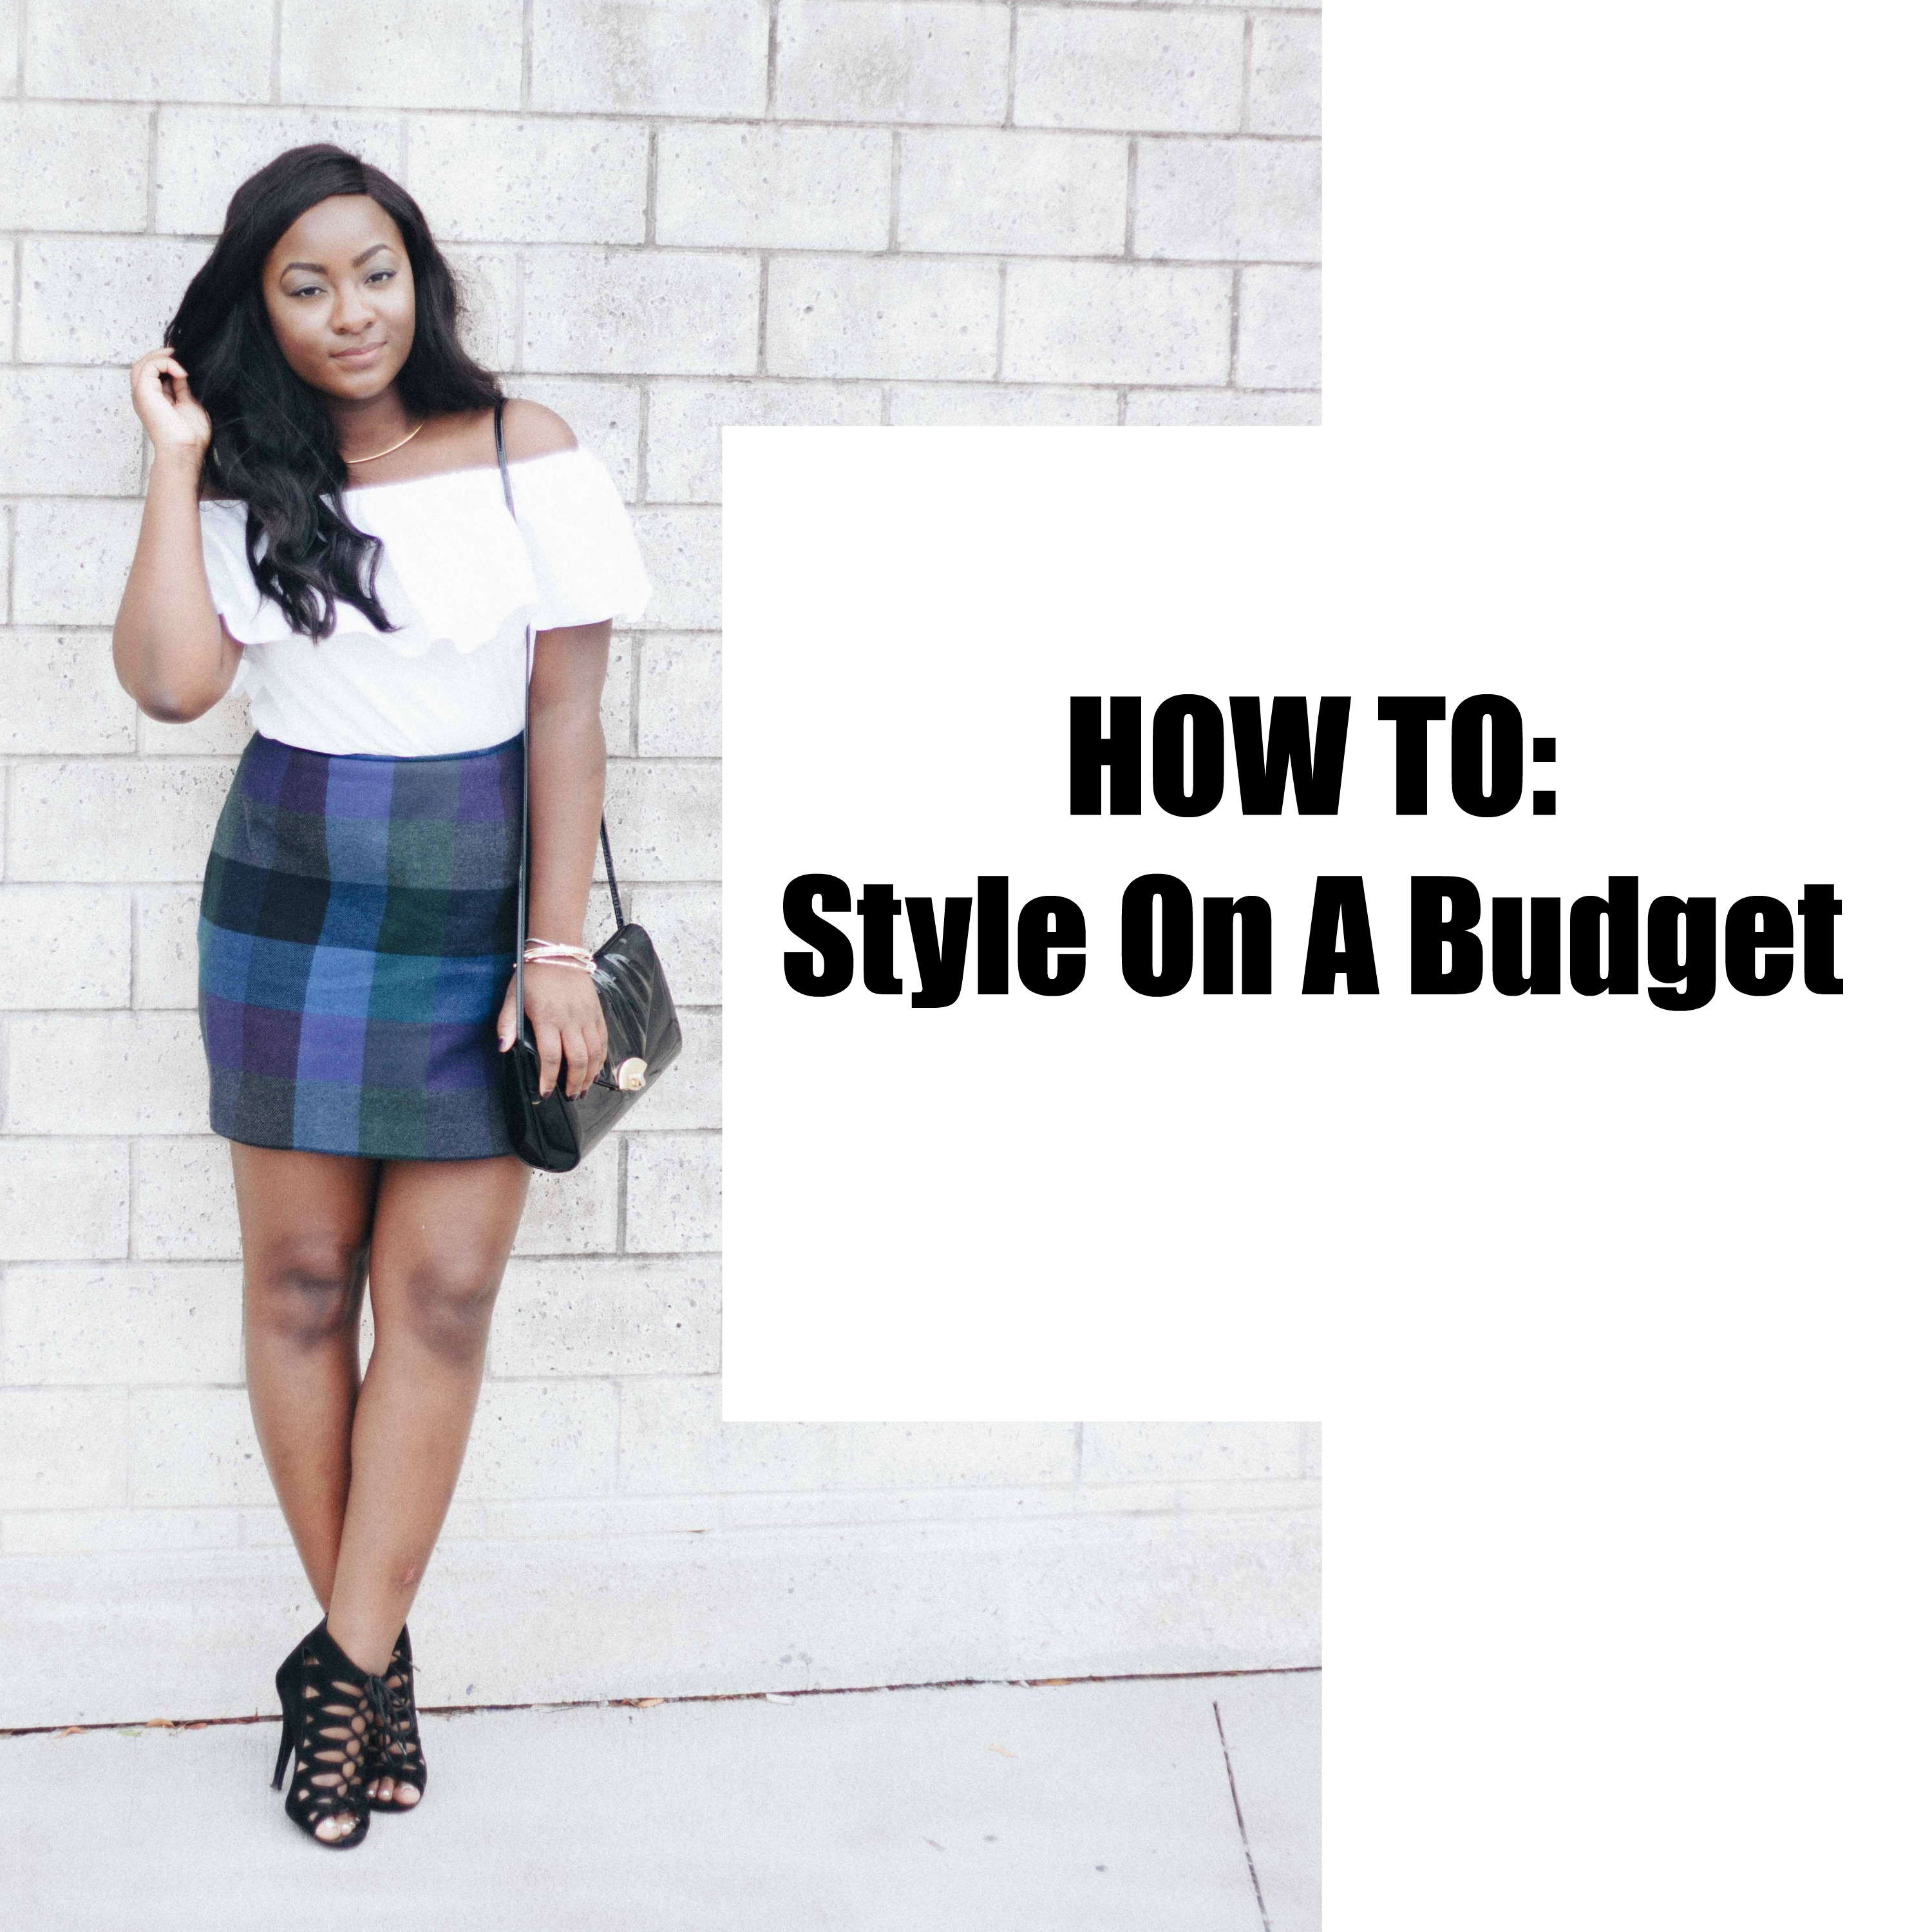 How To: Style On A Budget